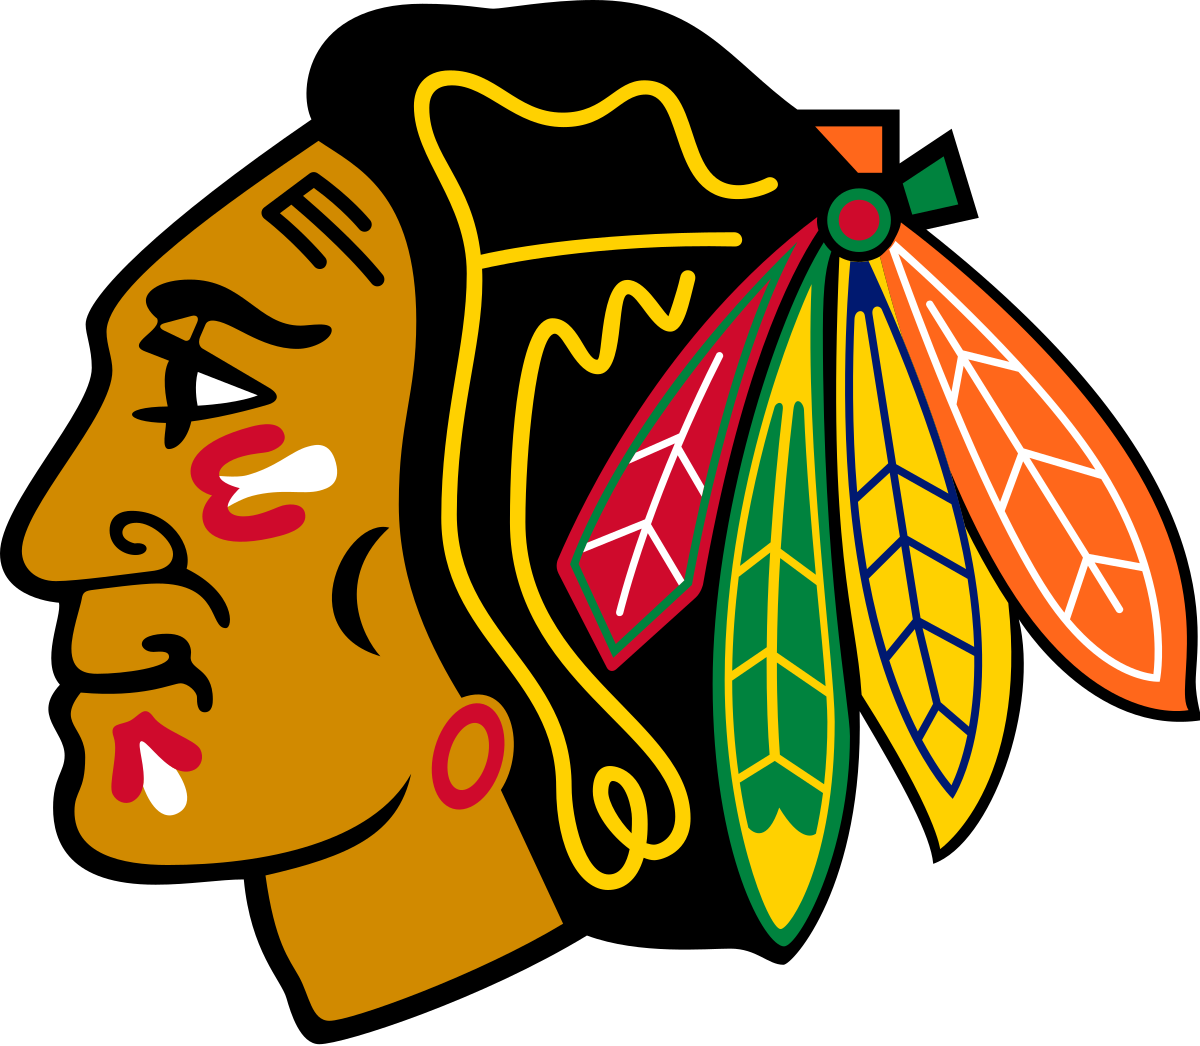 Indian football mascot clipart png stock Chicago Blackhawks - Wikipedia png stock